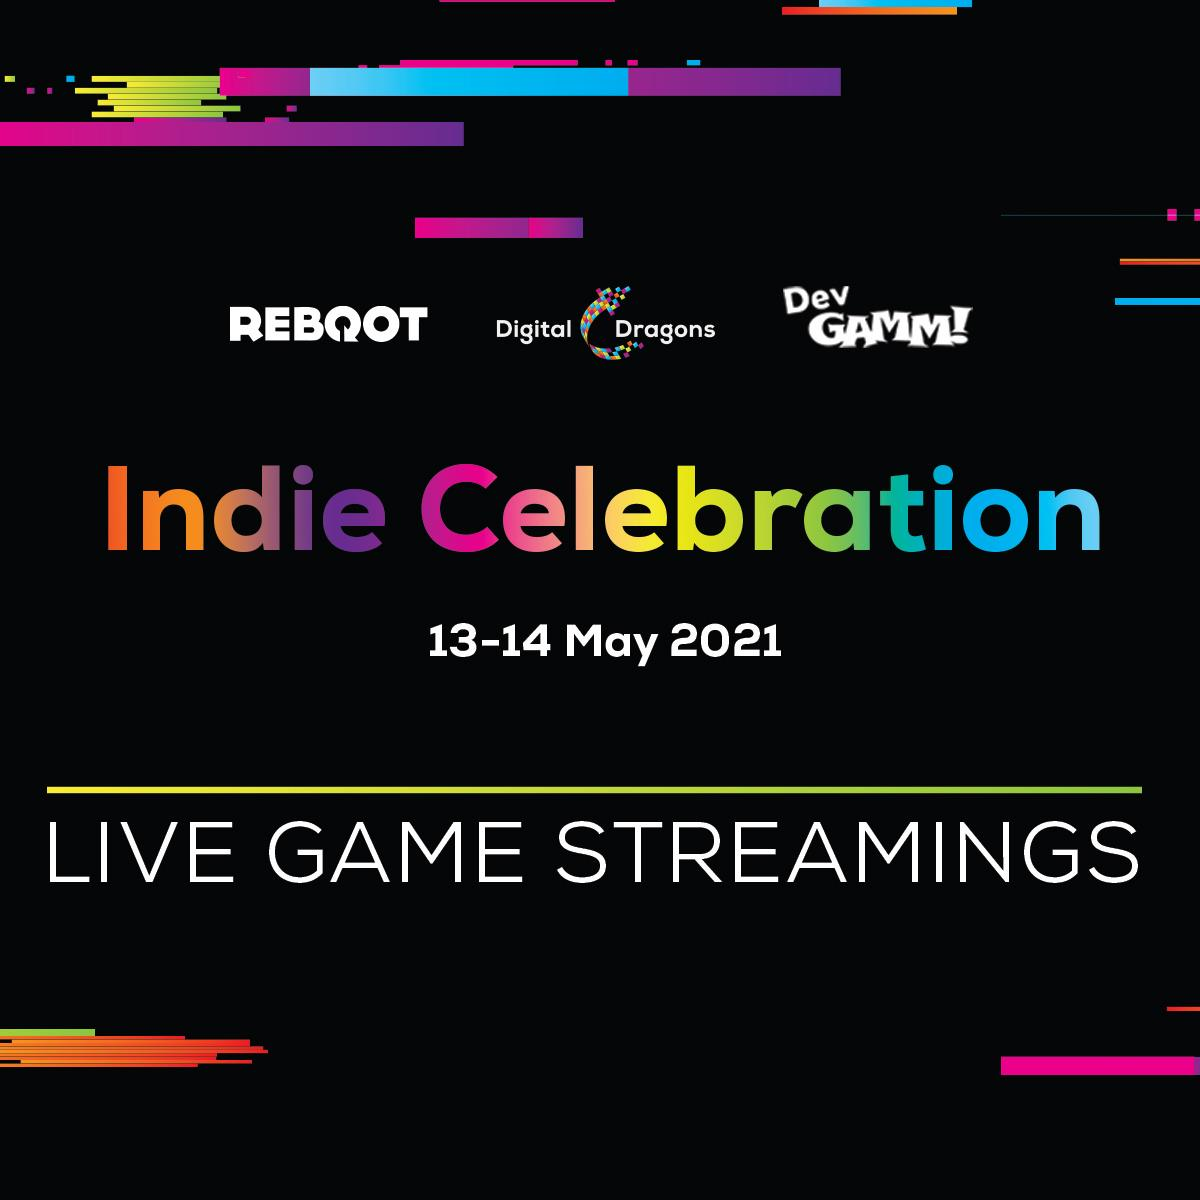 Digital Dragons Indie Celebration and Business Meet Up start Today!